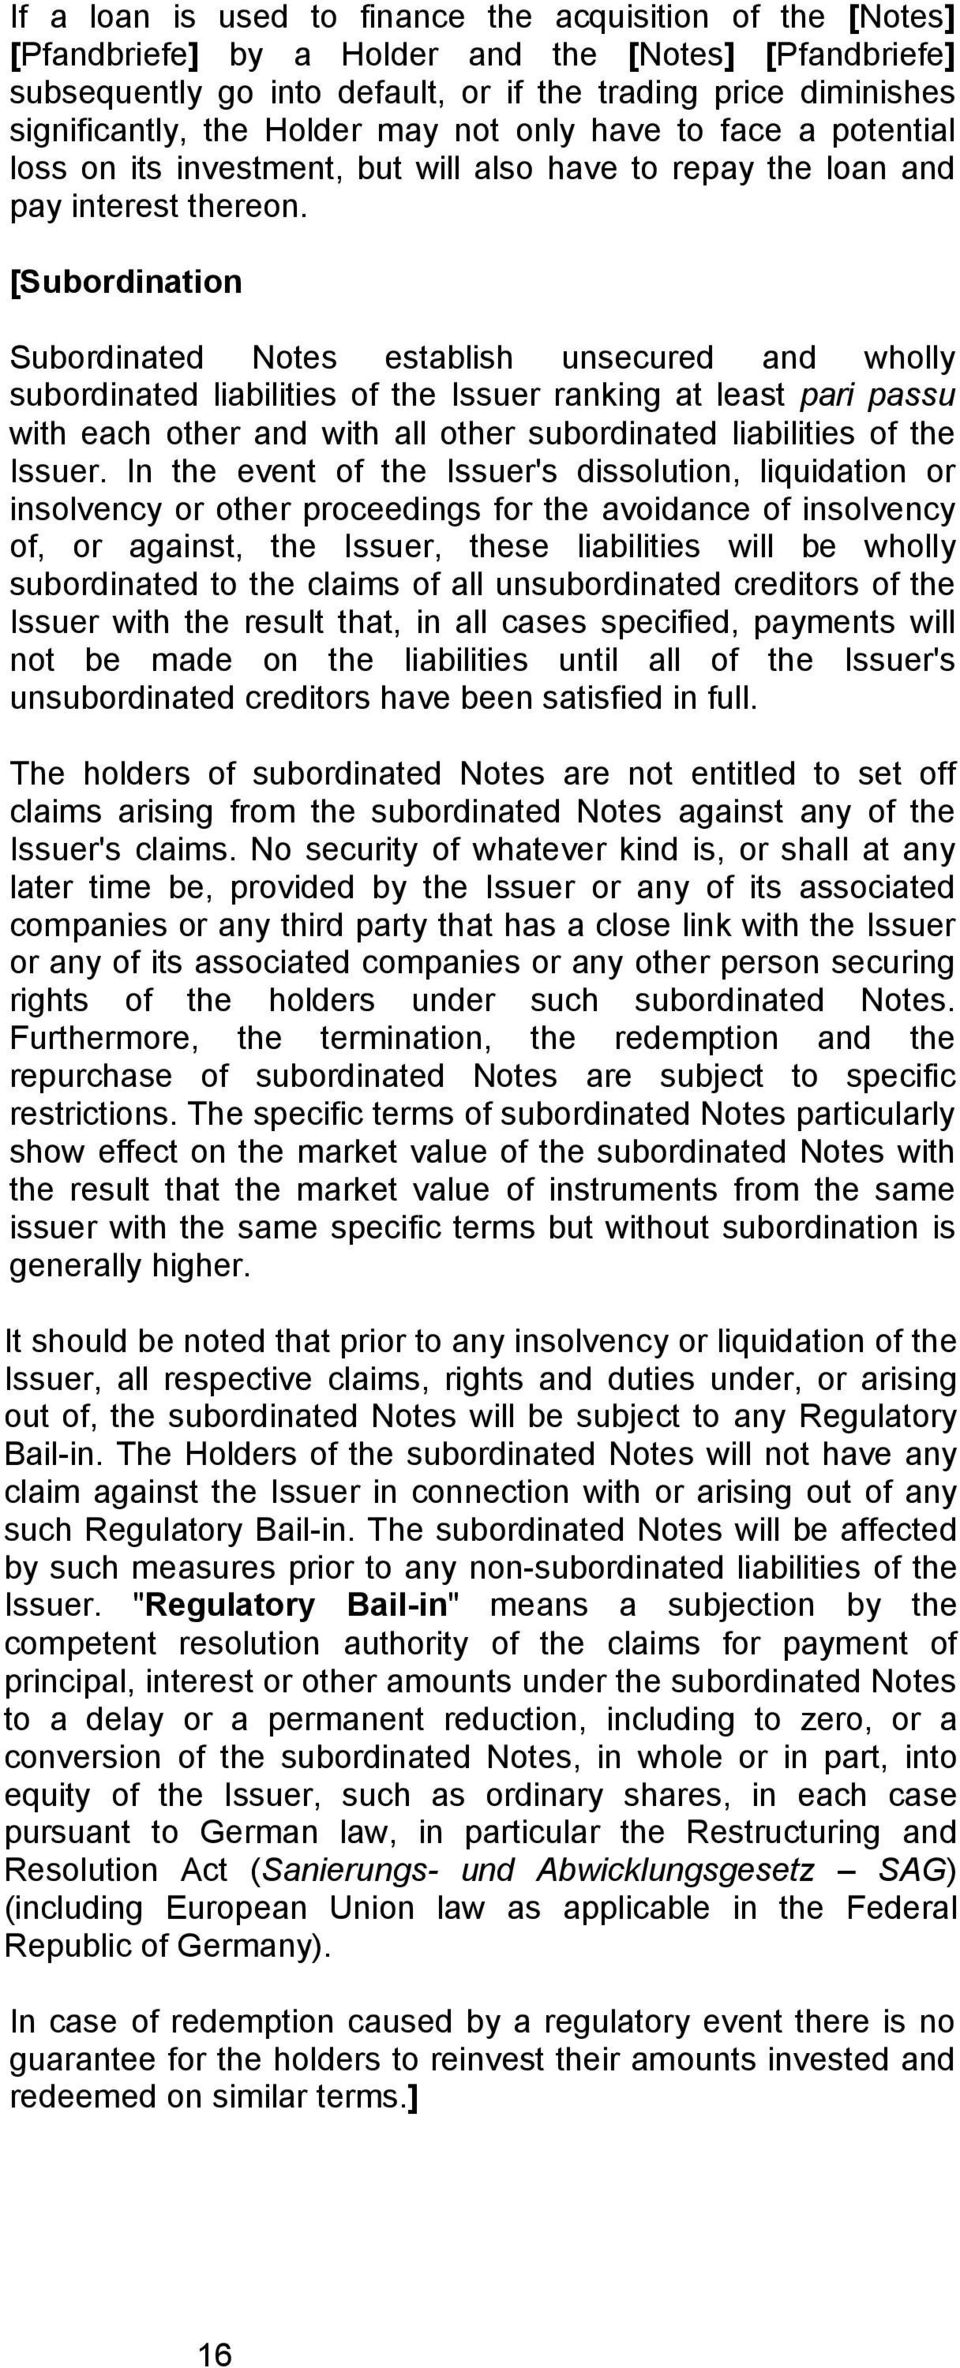 [Subordination Subordinated Notes establish unsecured and wholly subordinated liabilities of the Issuer ranking at least pari passu with each other and with all other subordinated liabilities of the